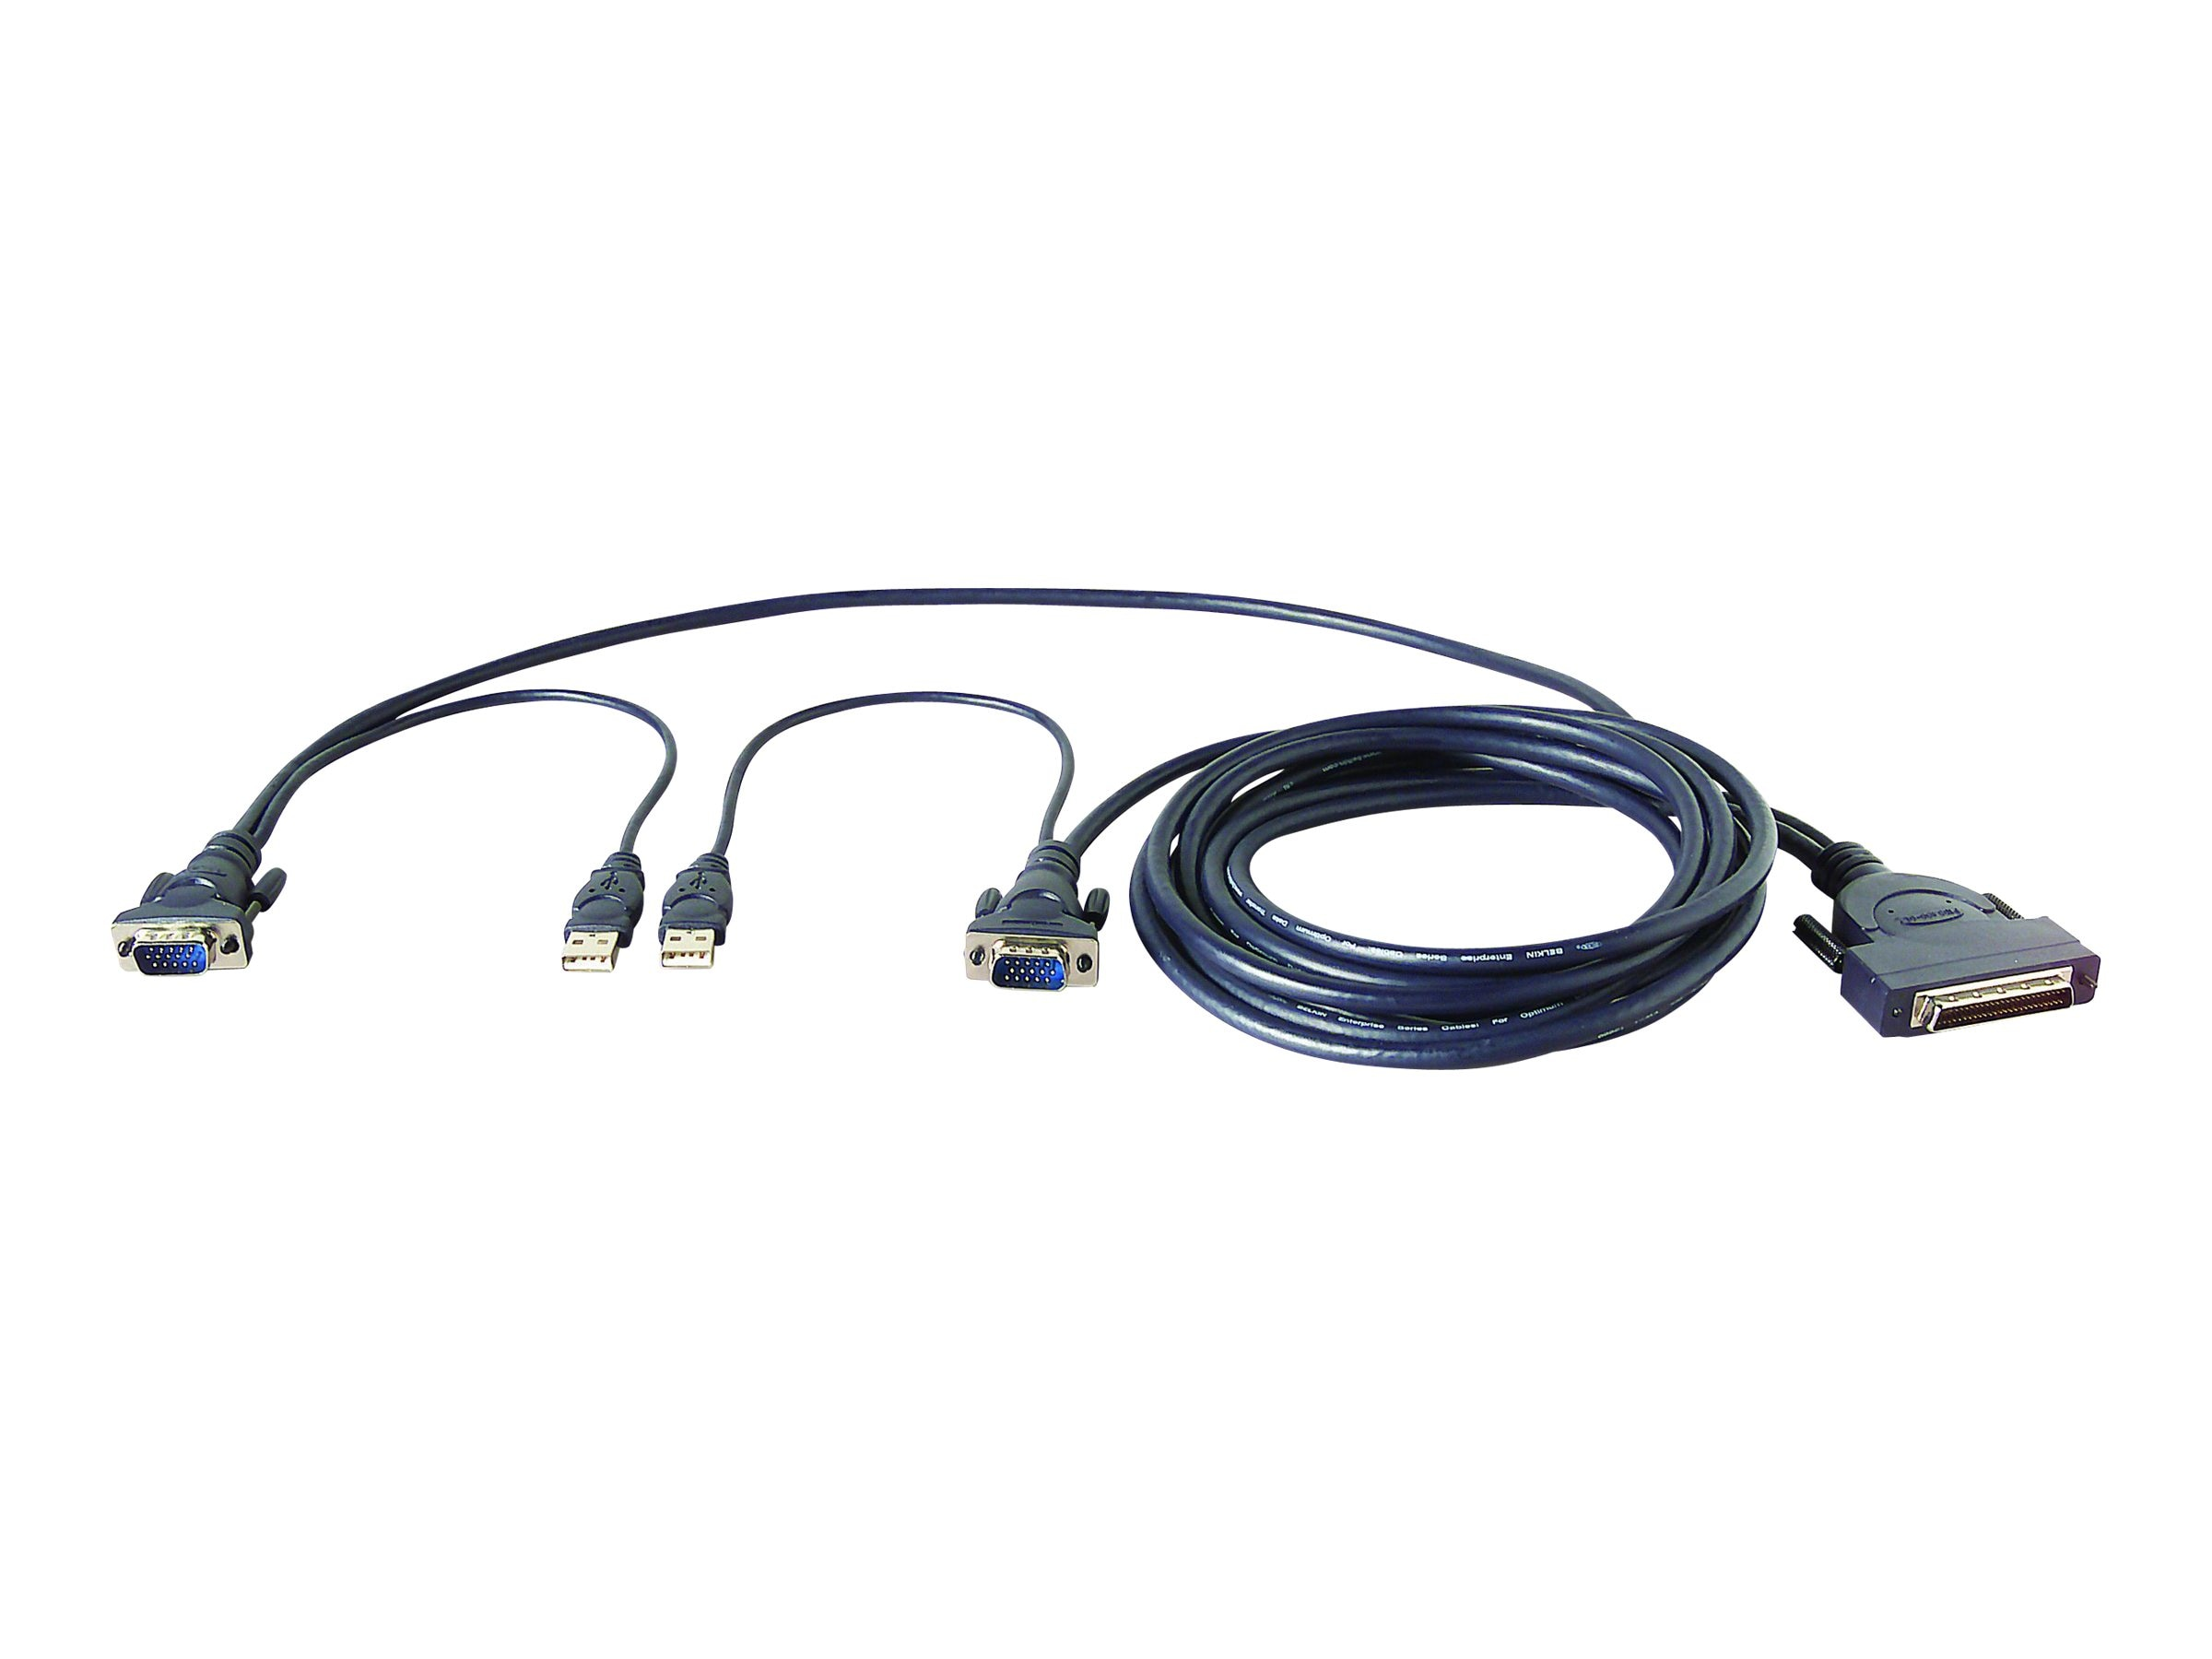 Belkin OmniView Enterprise Series Dual-Port USB KVM Cable, 6ft - bulk packaging, F1D9401-06, 364654, Cables